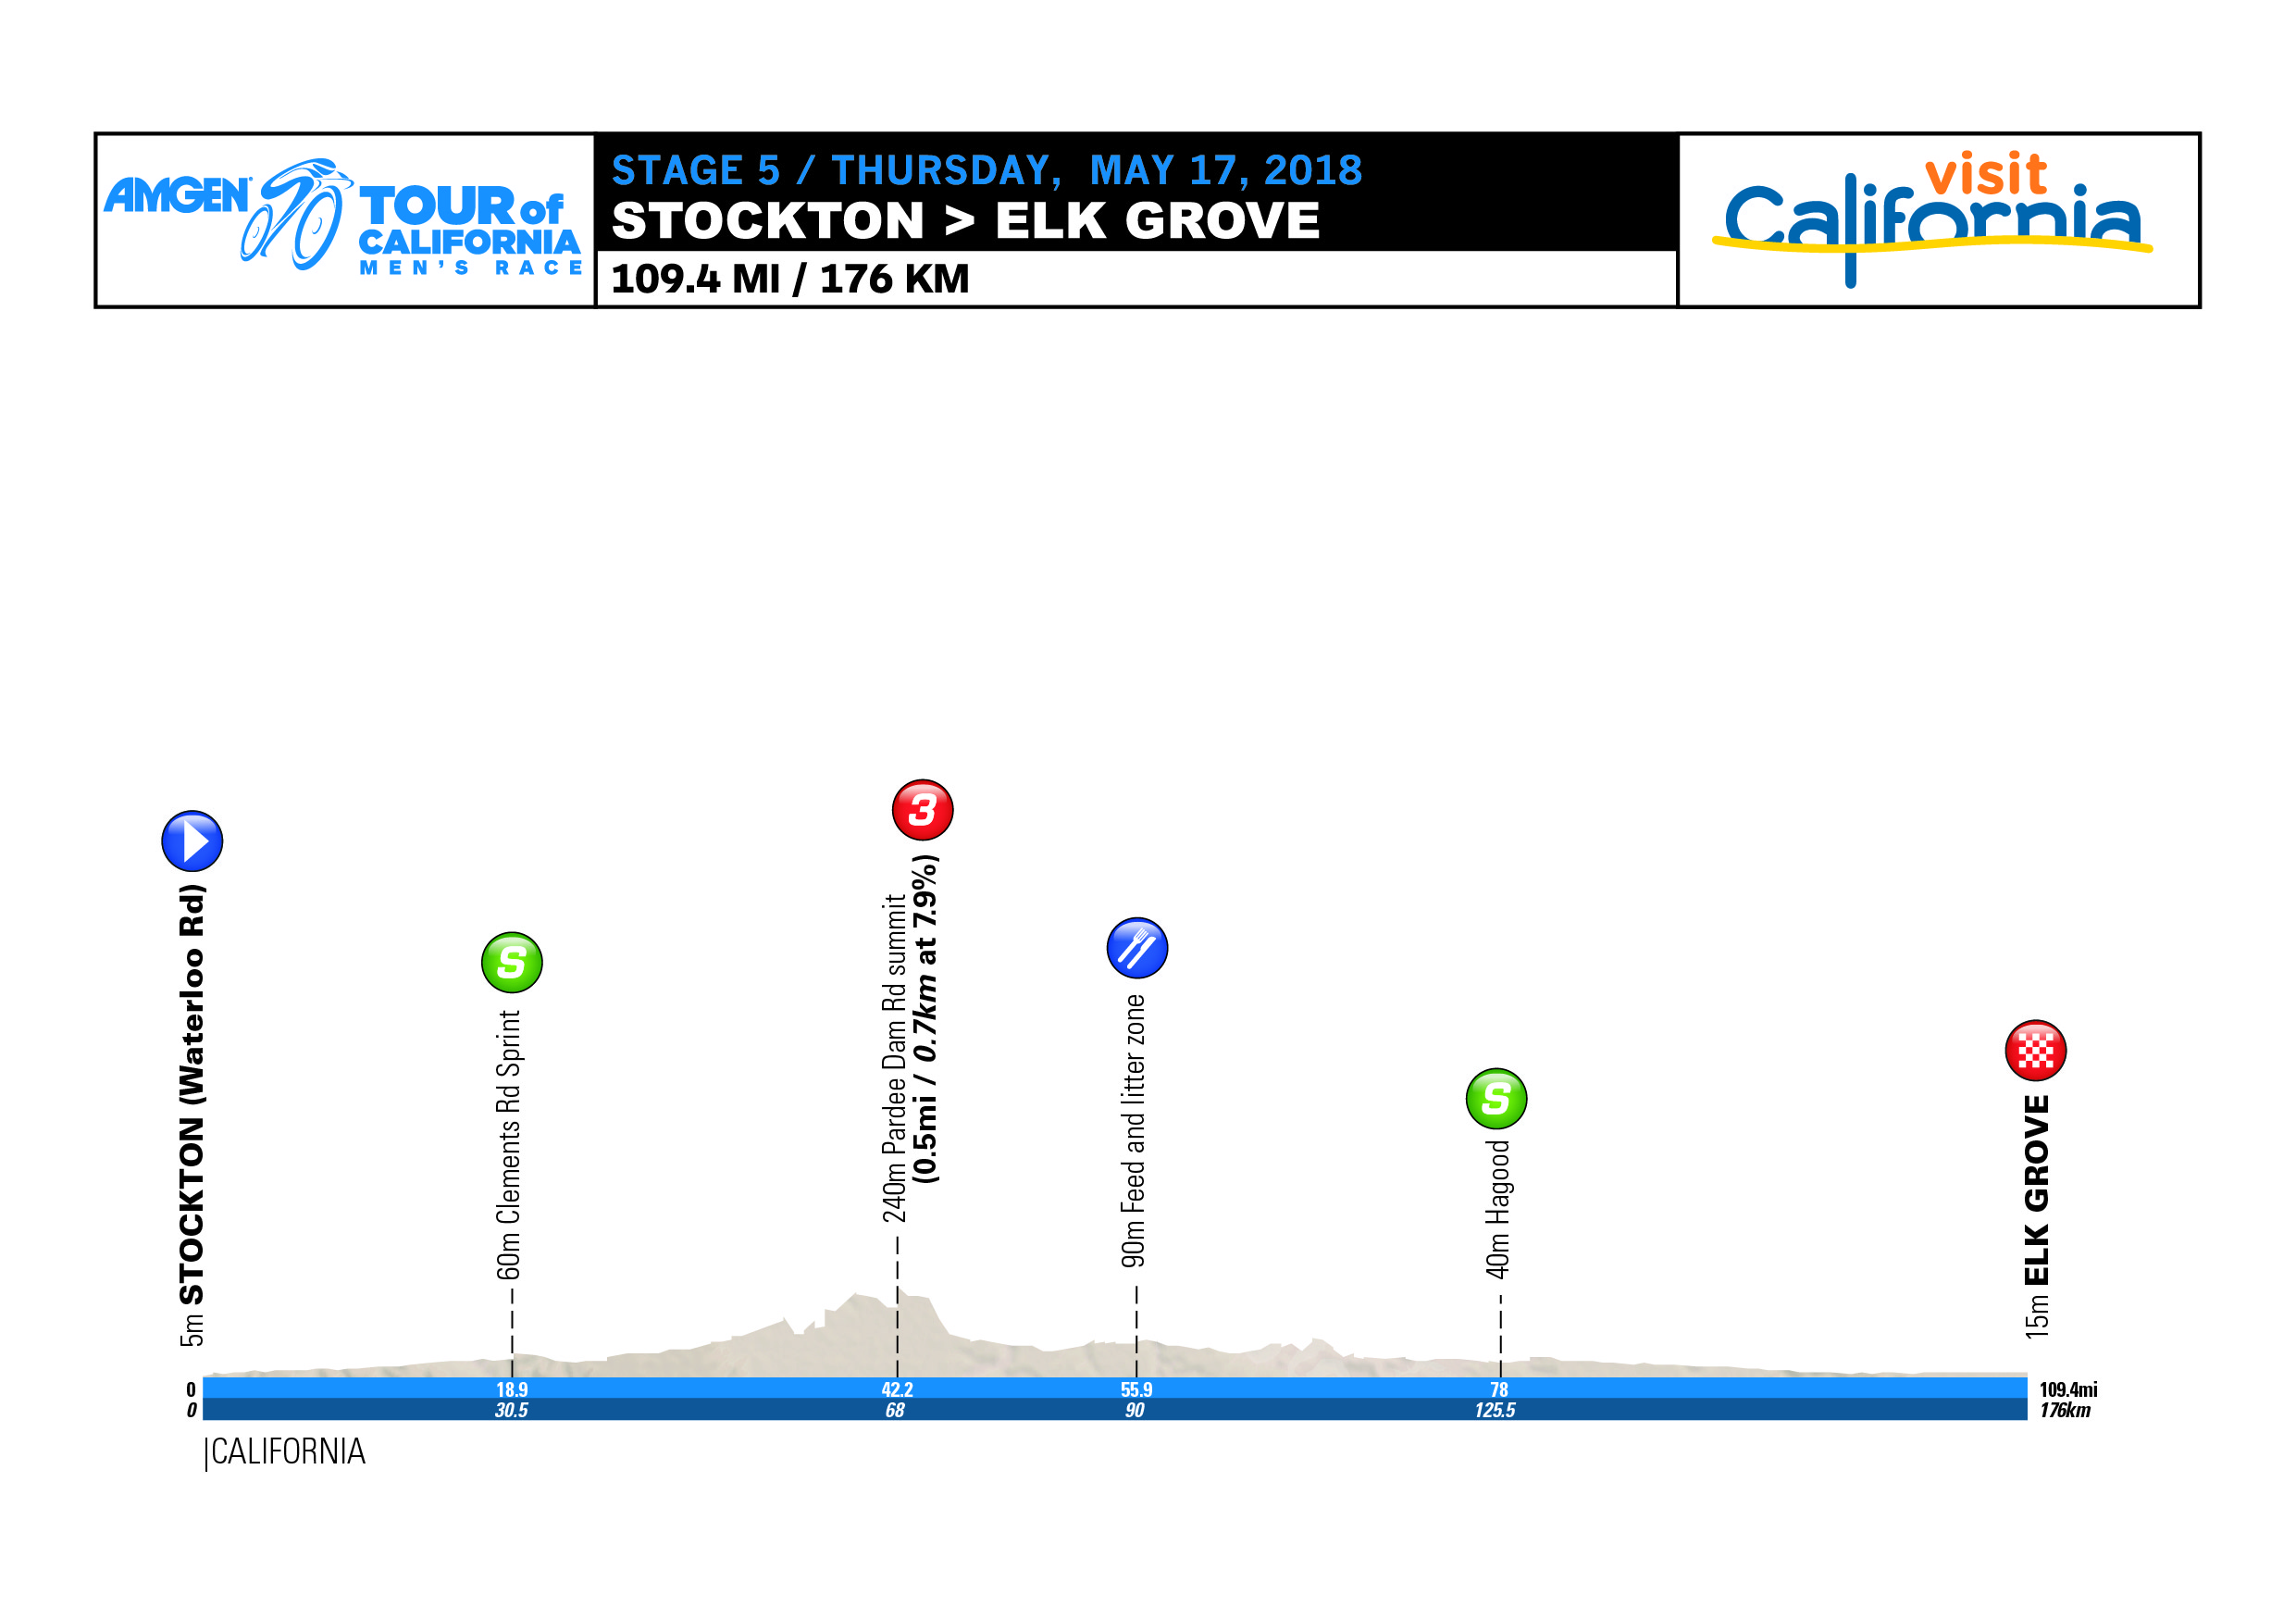 Amgen Tour of California Tour-of-california-2018-stage-5-profile-7a982625e0